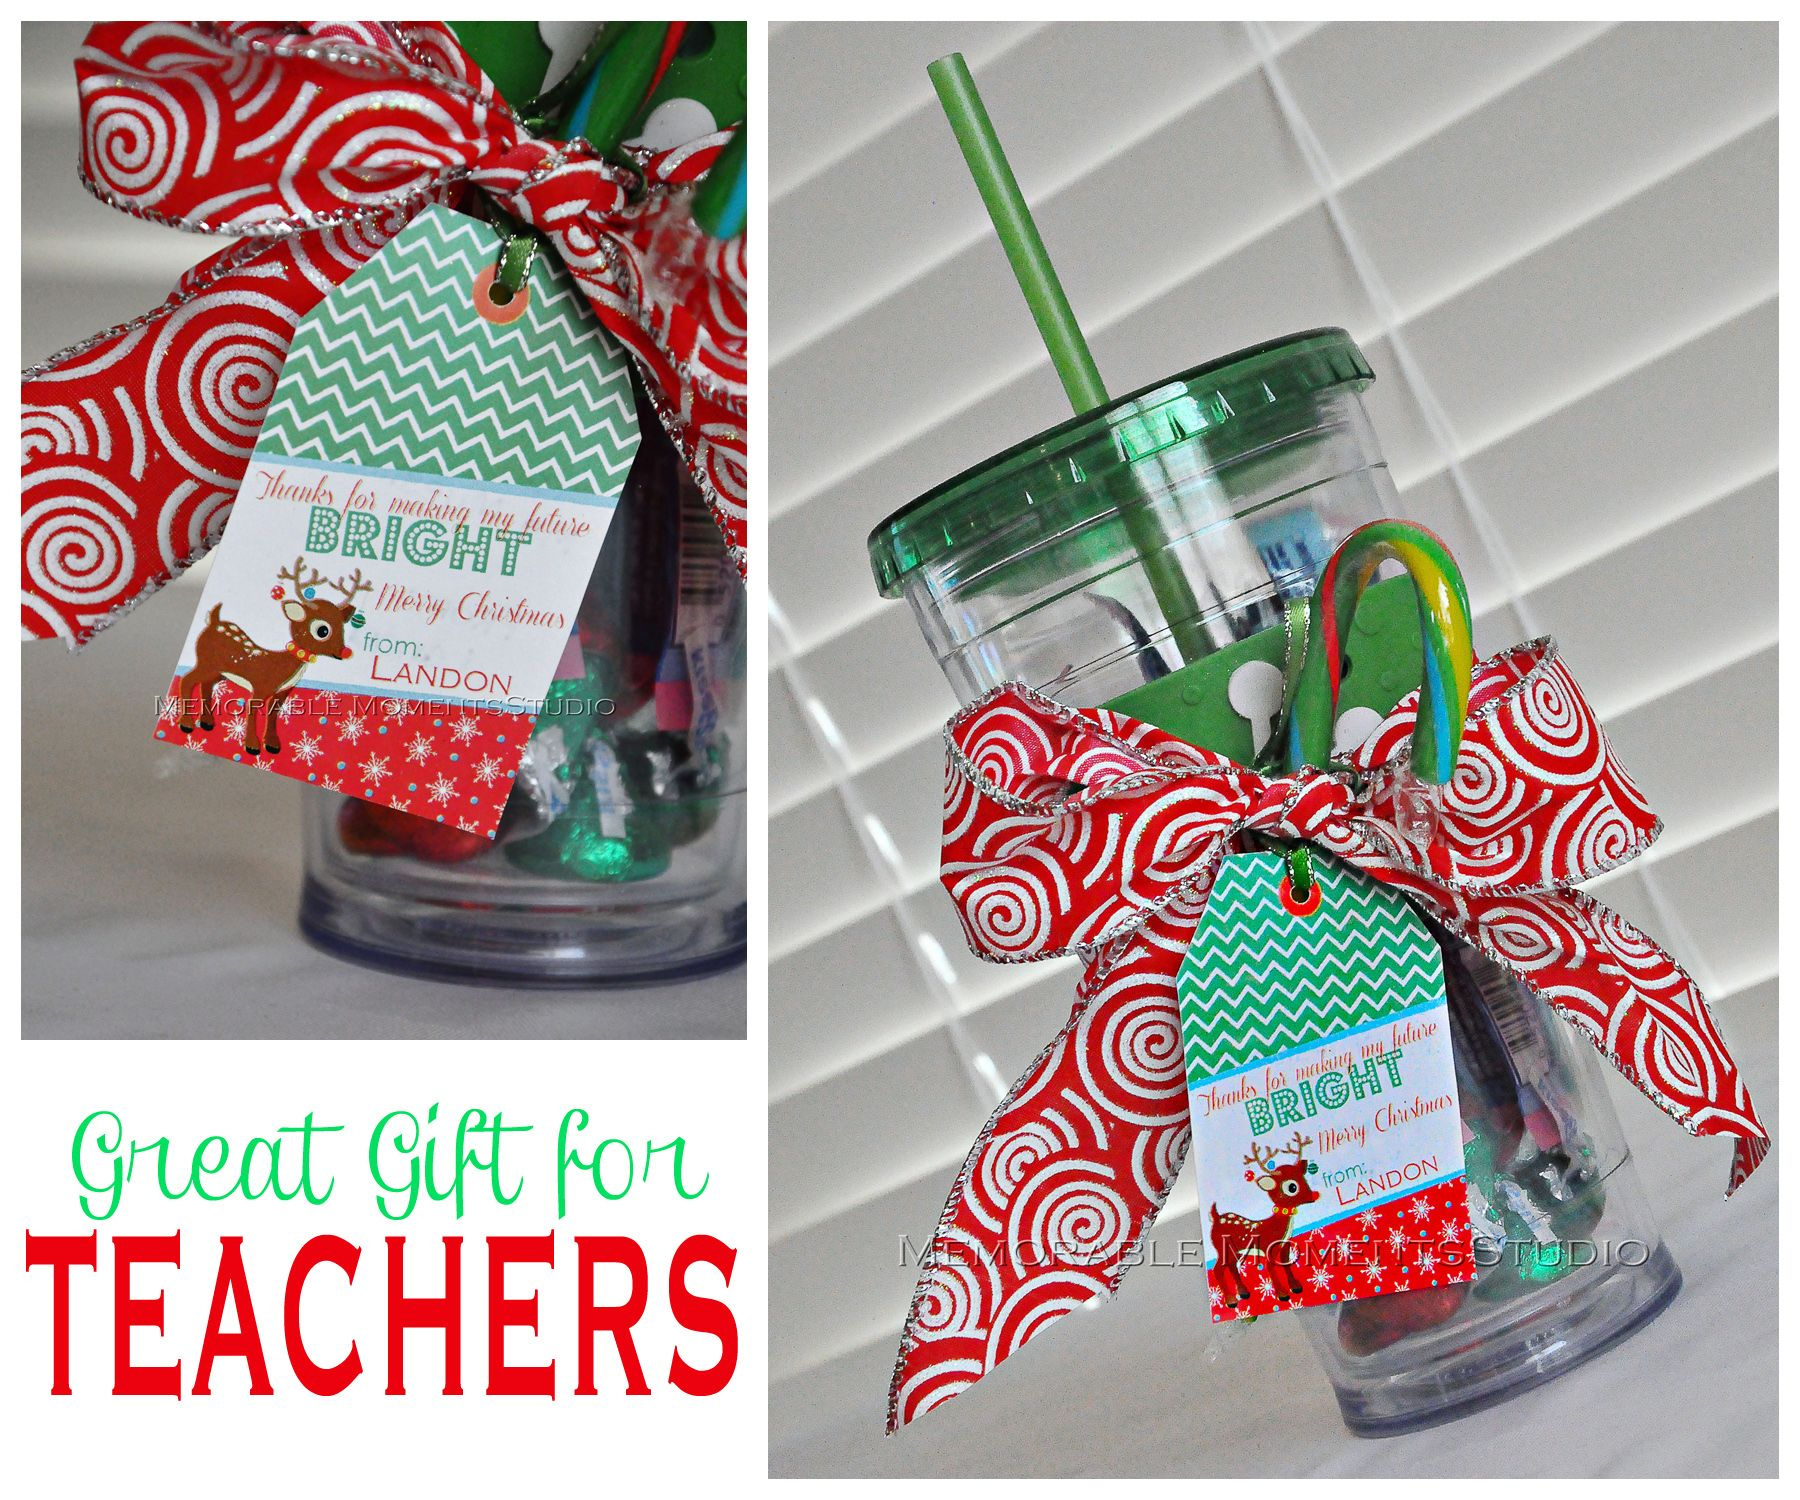 Great Diy Christmas Gift: Homemade Christmas Gifts For